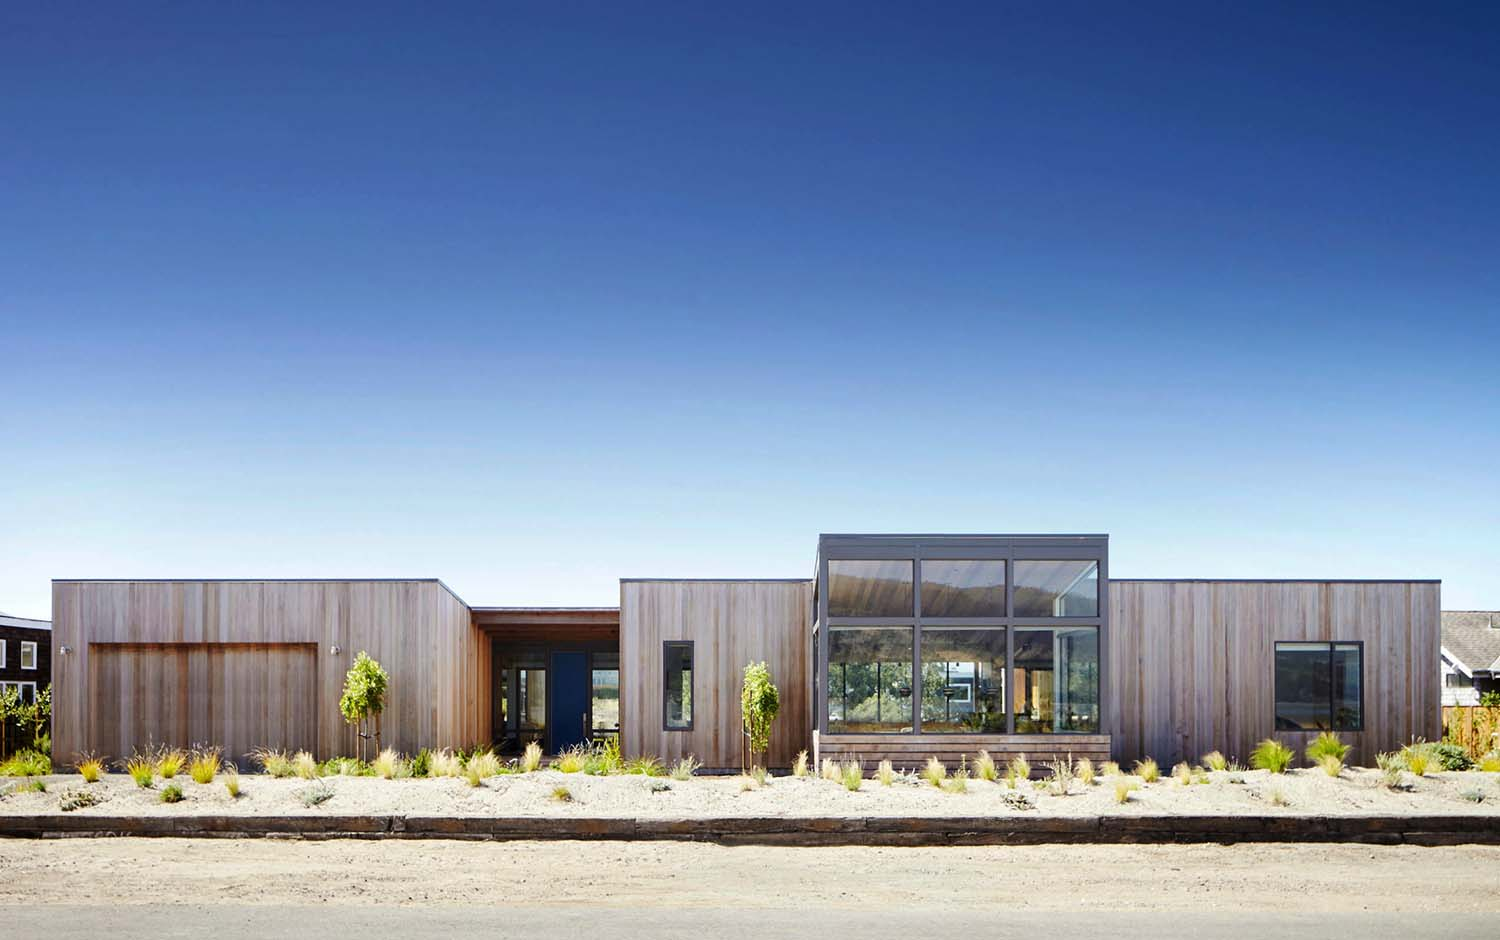 stinson-beach-lagoon-residence-turnbull-griffin-haesloop-02-1-kindesign